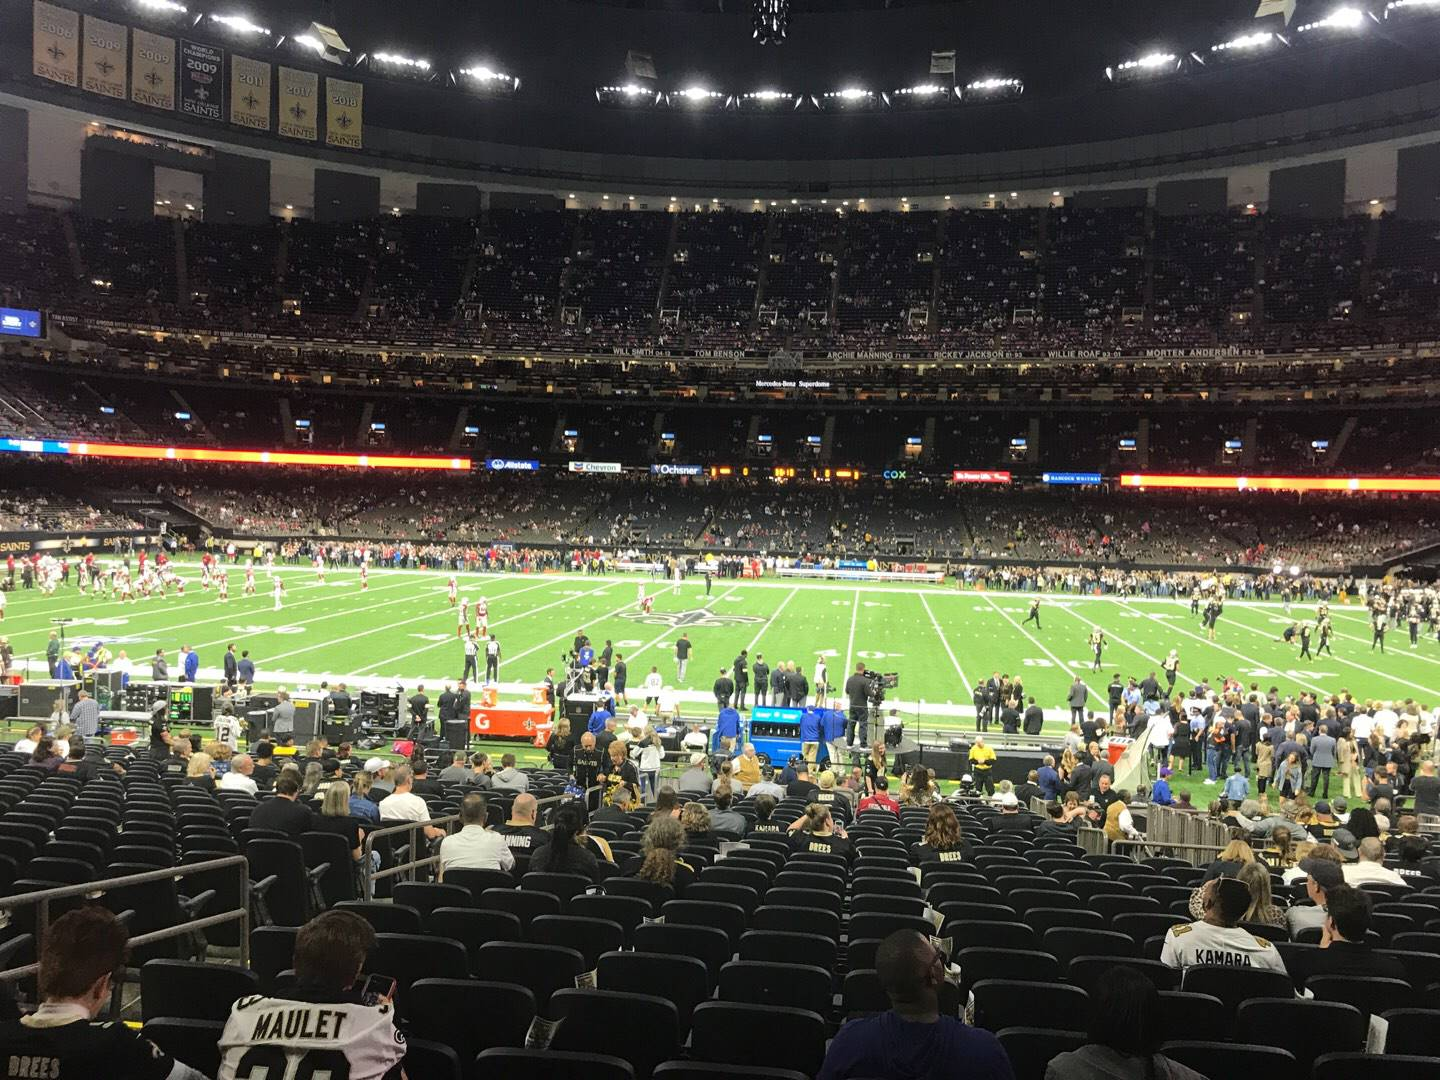 Mercedes-Benz Superdome Section 141 Row 27 Seat 17